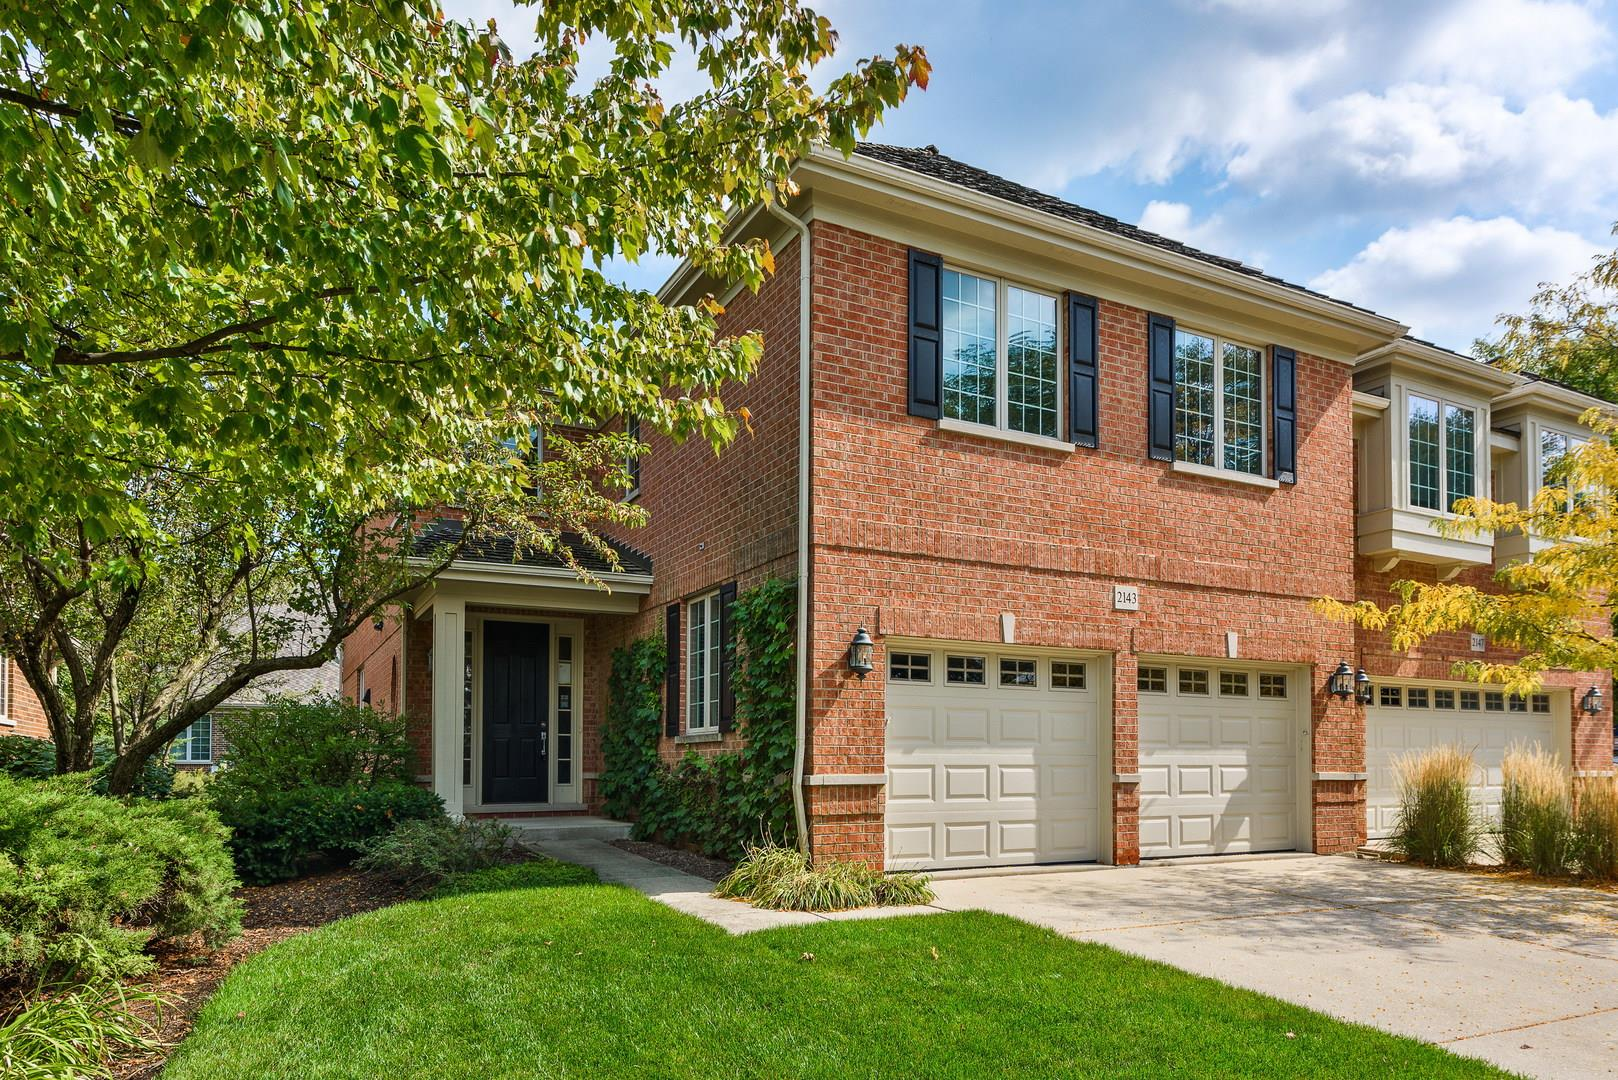 2143 Claridge Lane, Northbrook, IL 60062 - #: 10883536